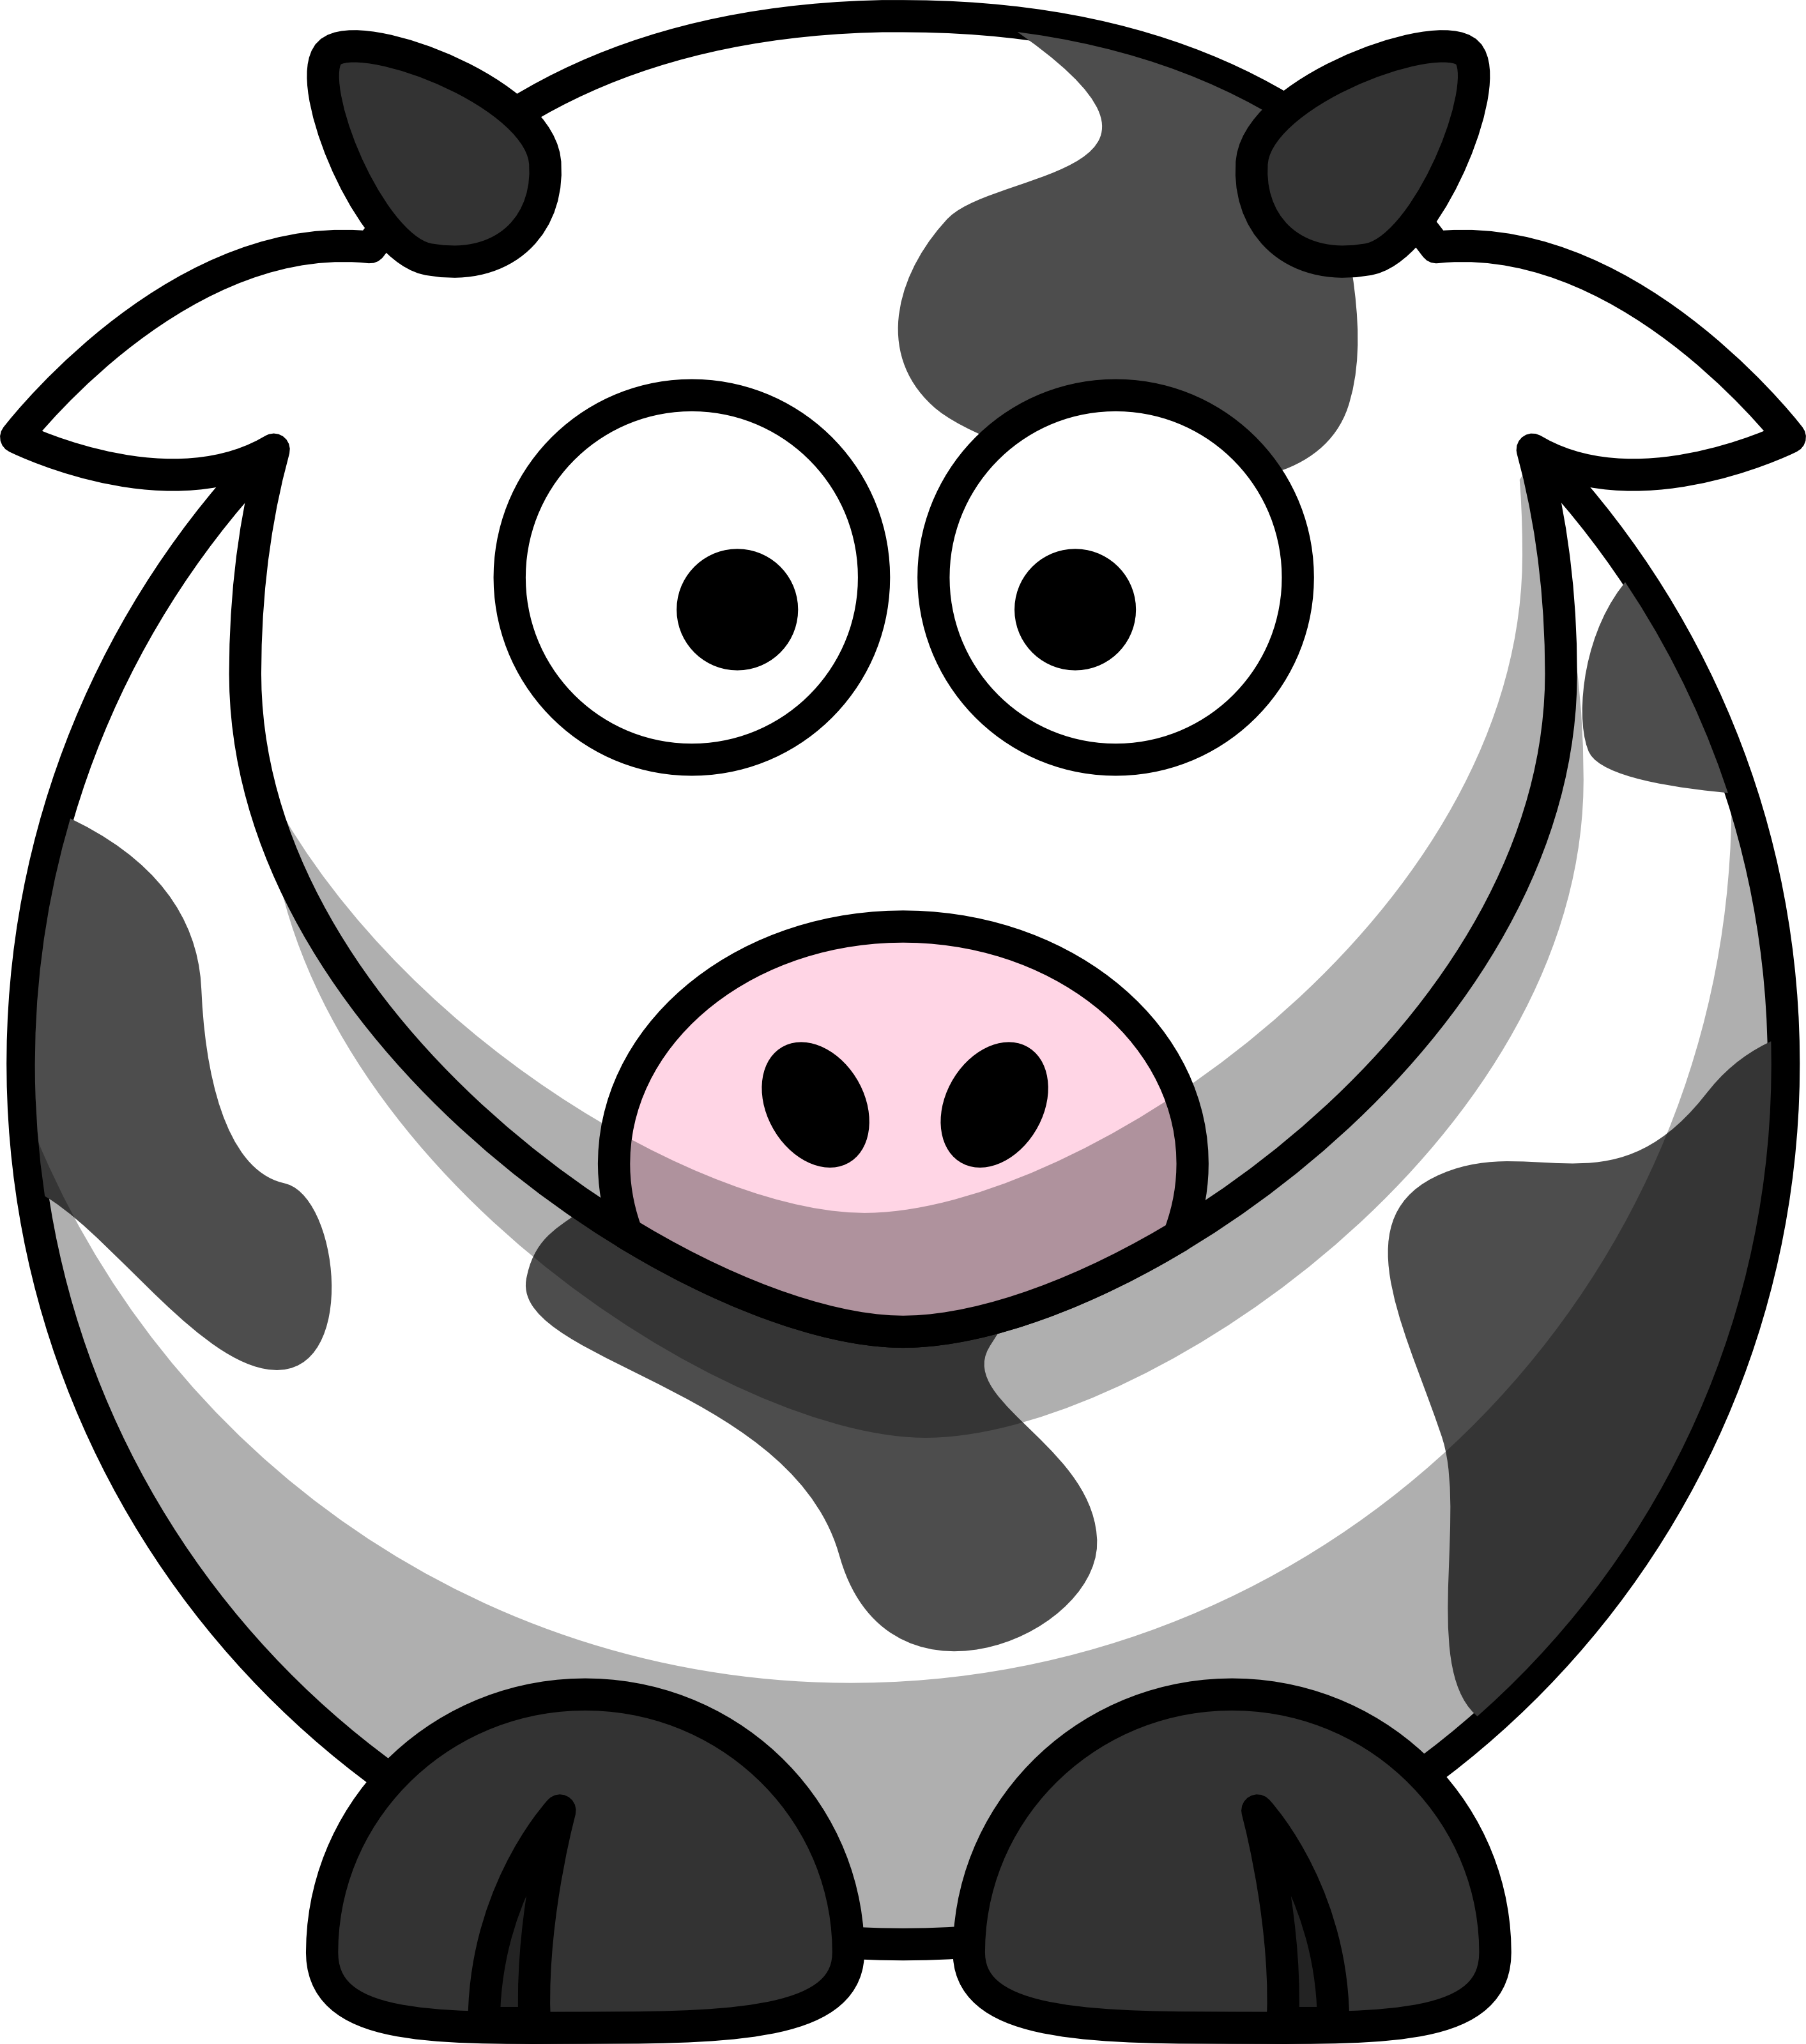 Cattle clipart #4, Download drawings